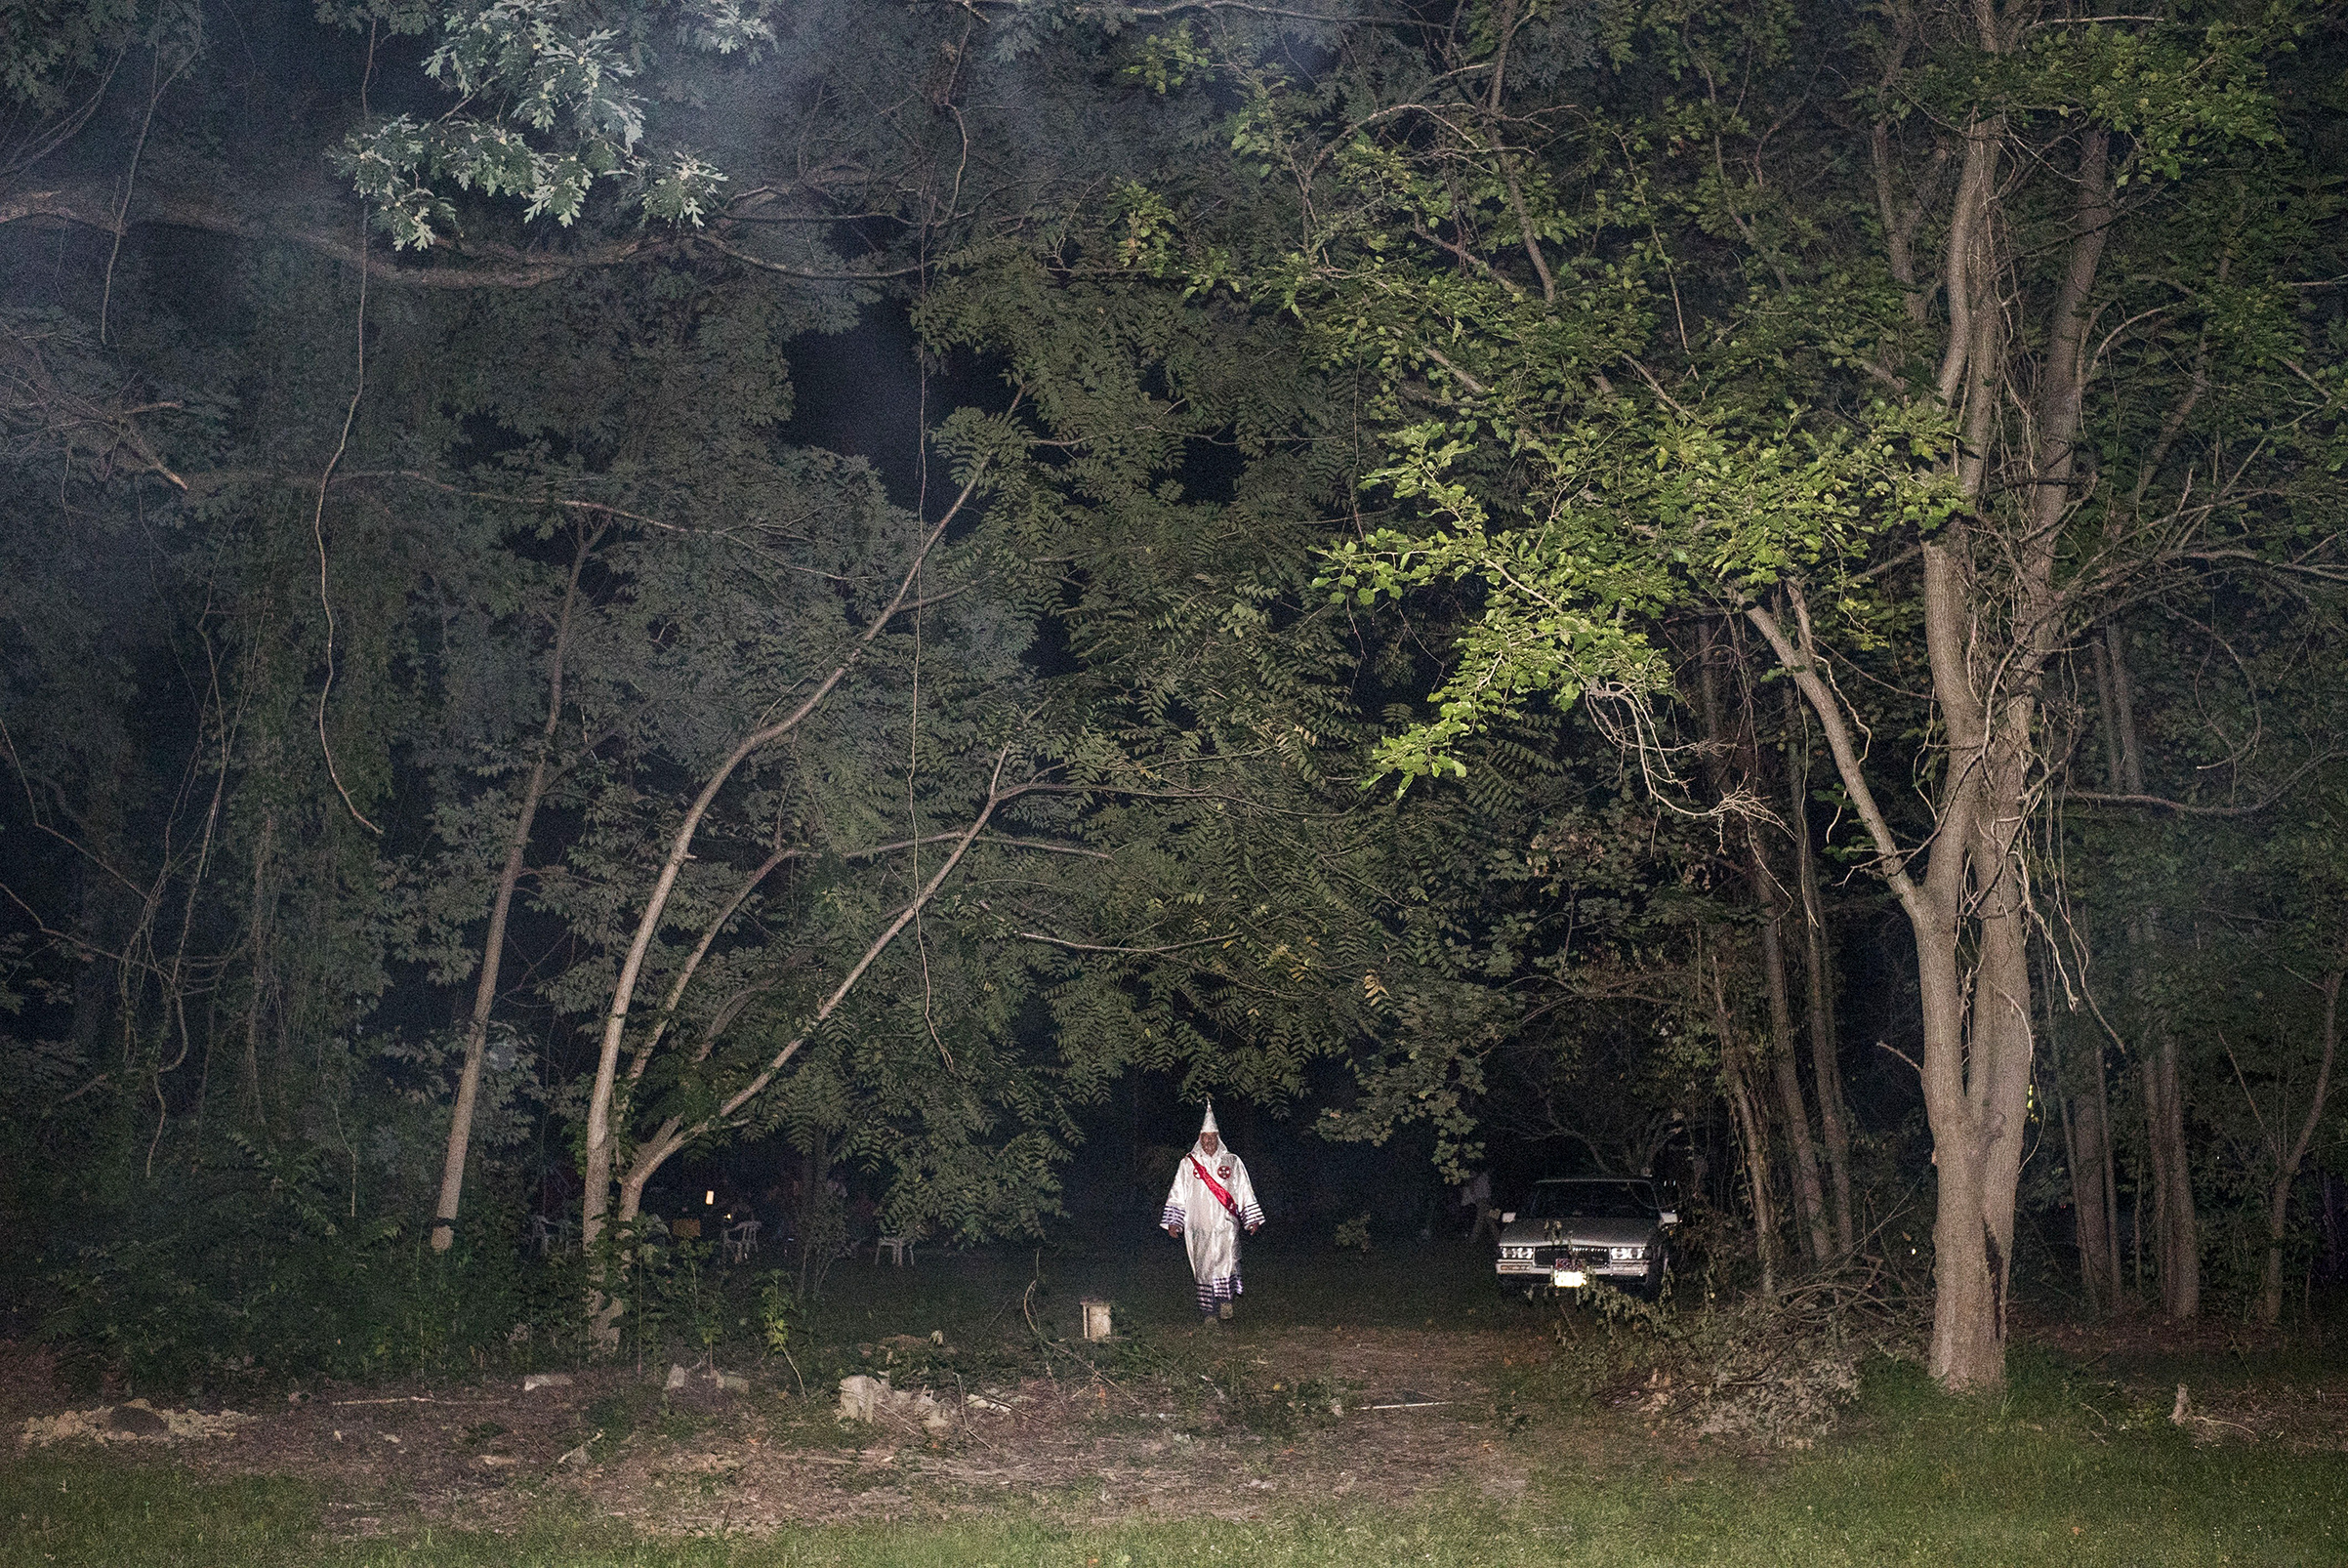 A Ku Klux Klan member in 2015 after a Maryland cross lighting, one of the group's rituals